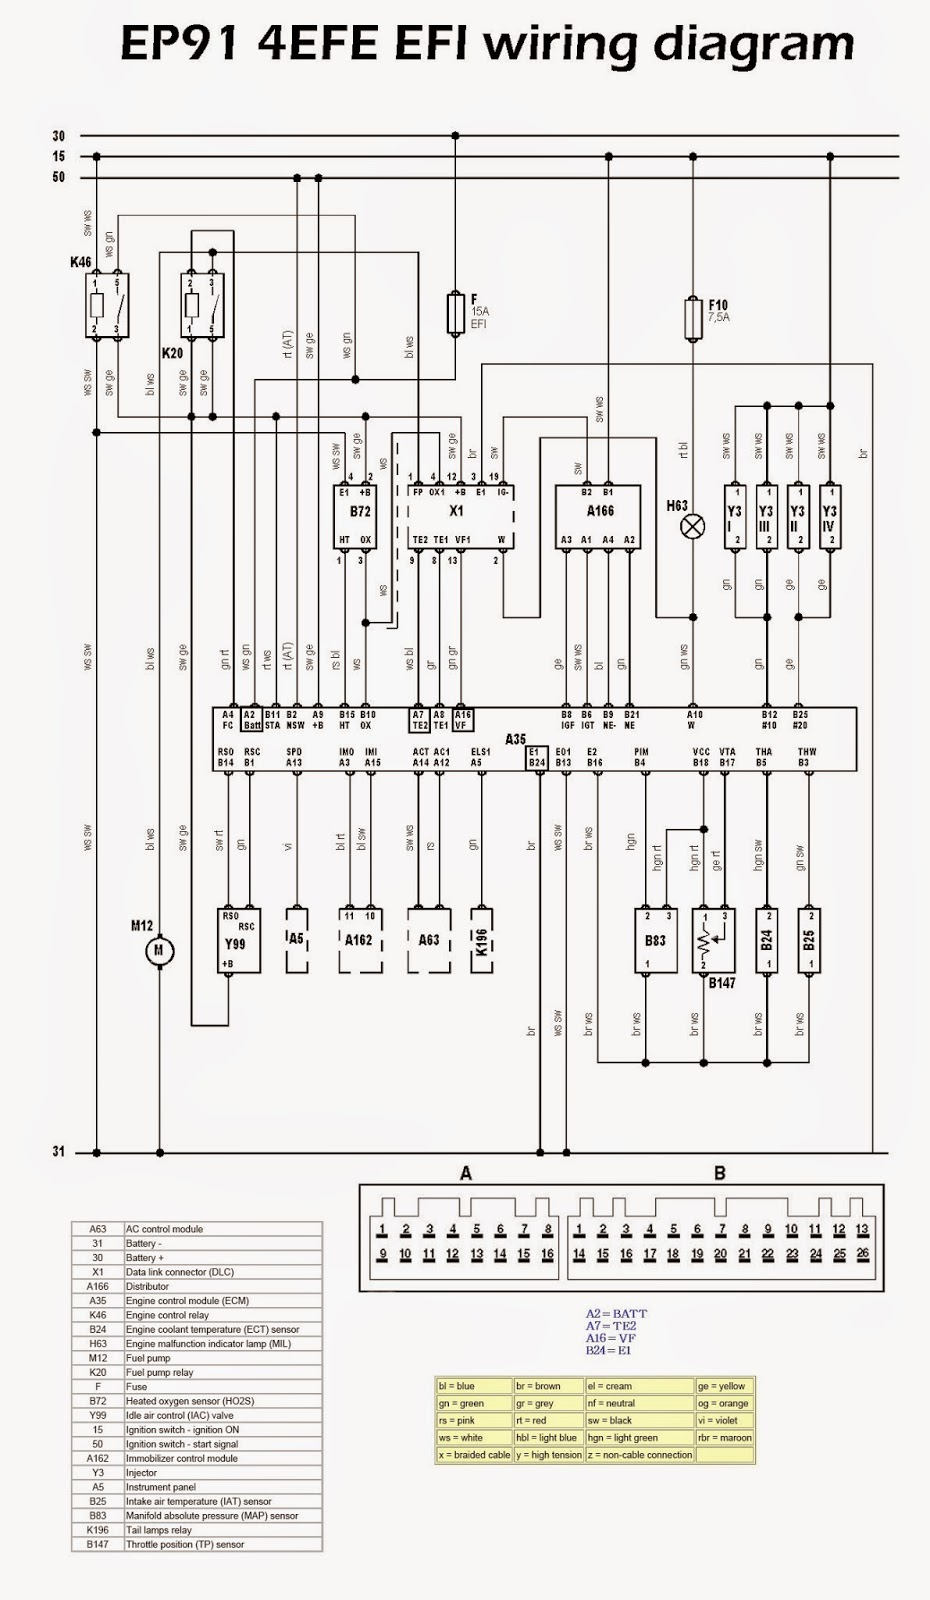 Dta Ecu Wiring Diagram Just Another Blog Nissan Ka20 Pictures Wire Toyota Diagrams Rh 15 10 4 Medi Med Ruhr De S40 Corolla 4age